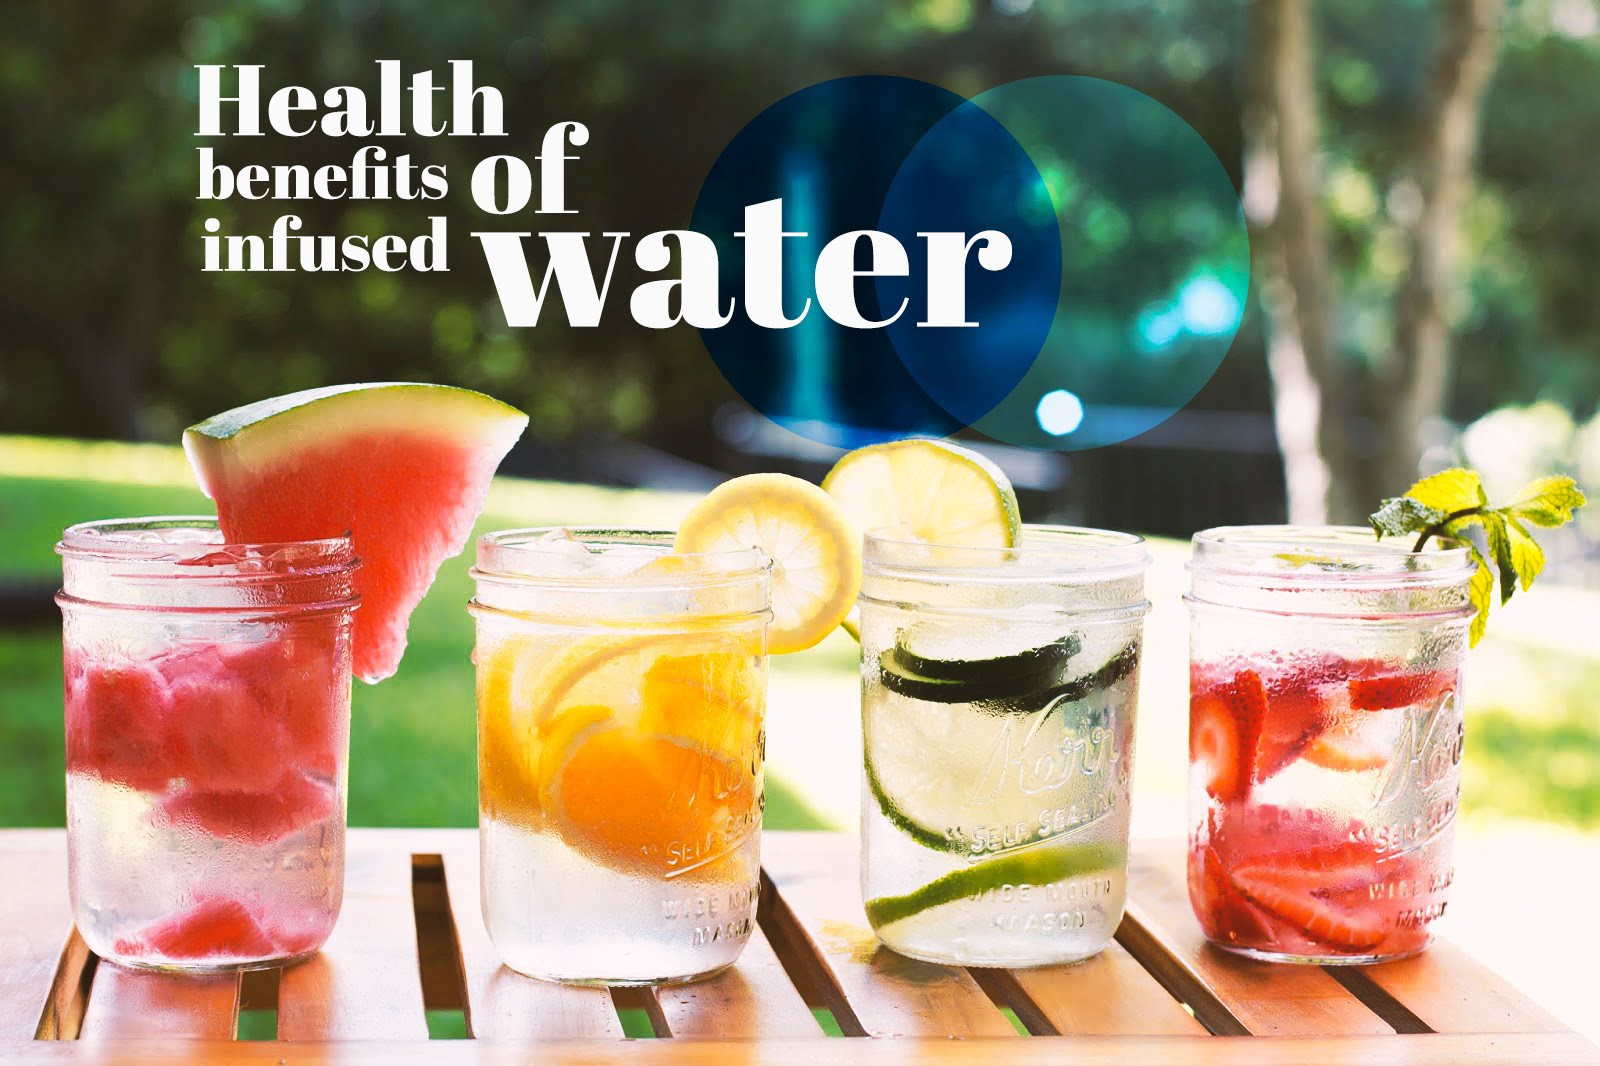 What Are The Benefits Of Infused Water